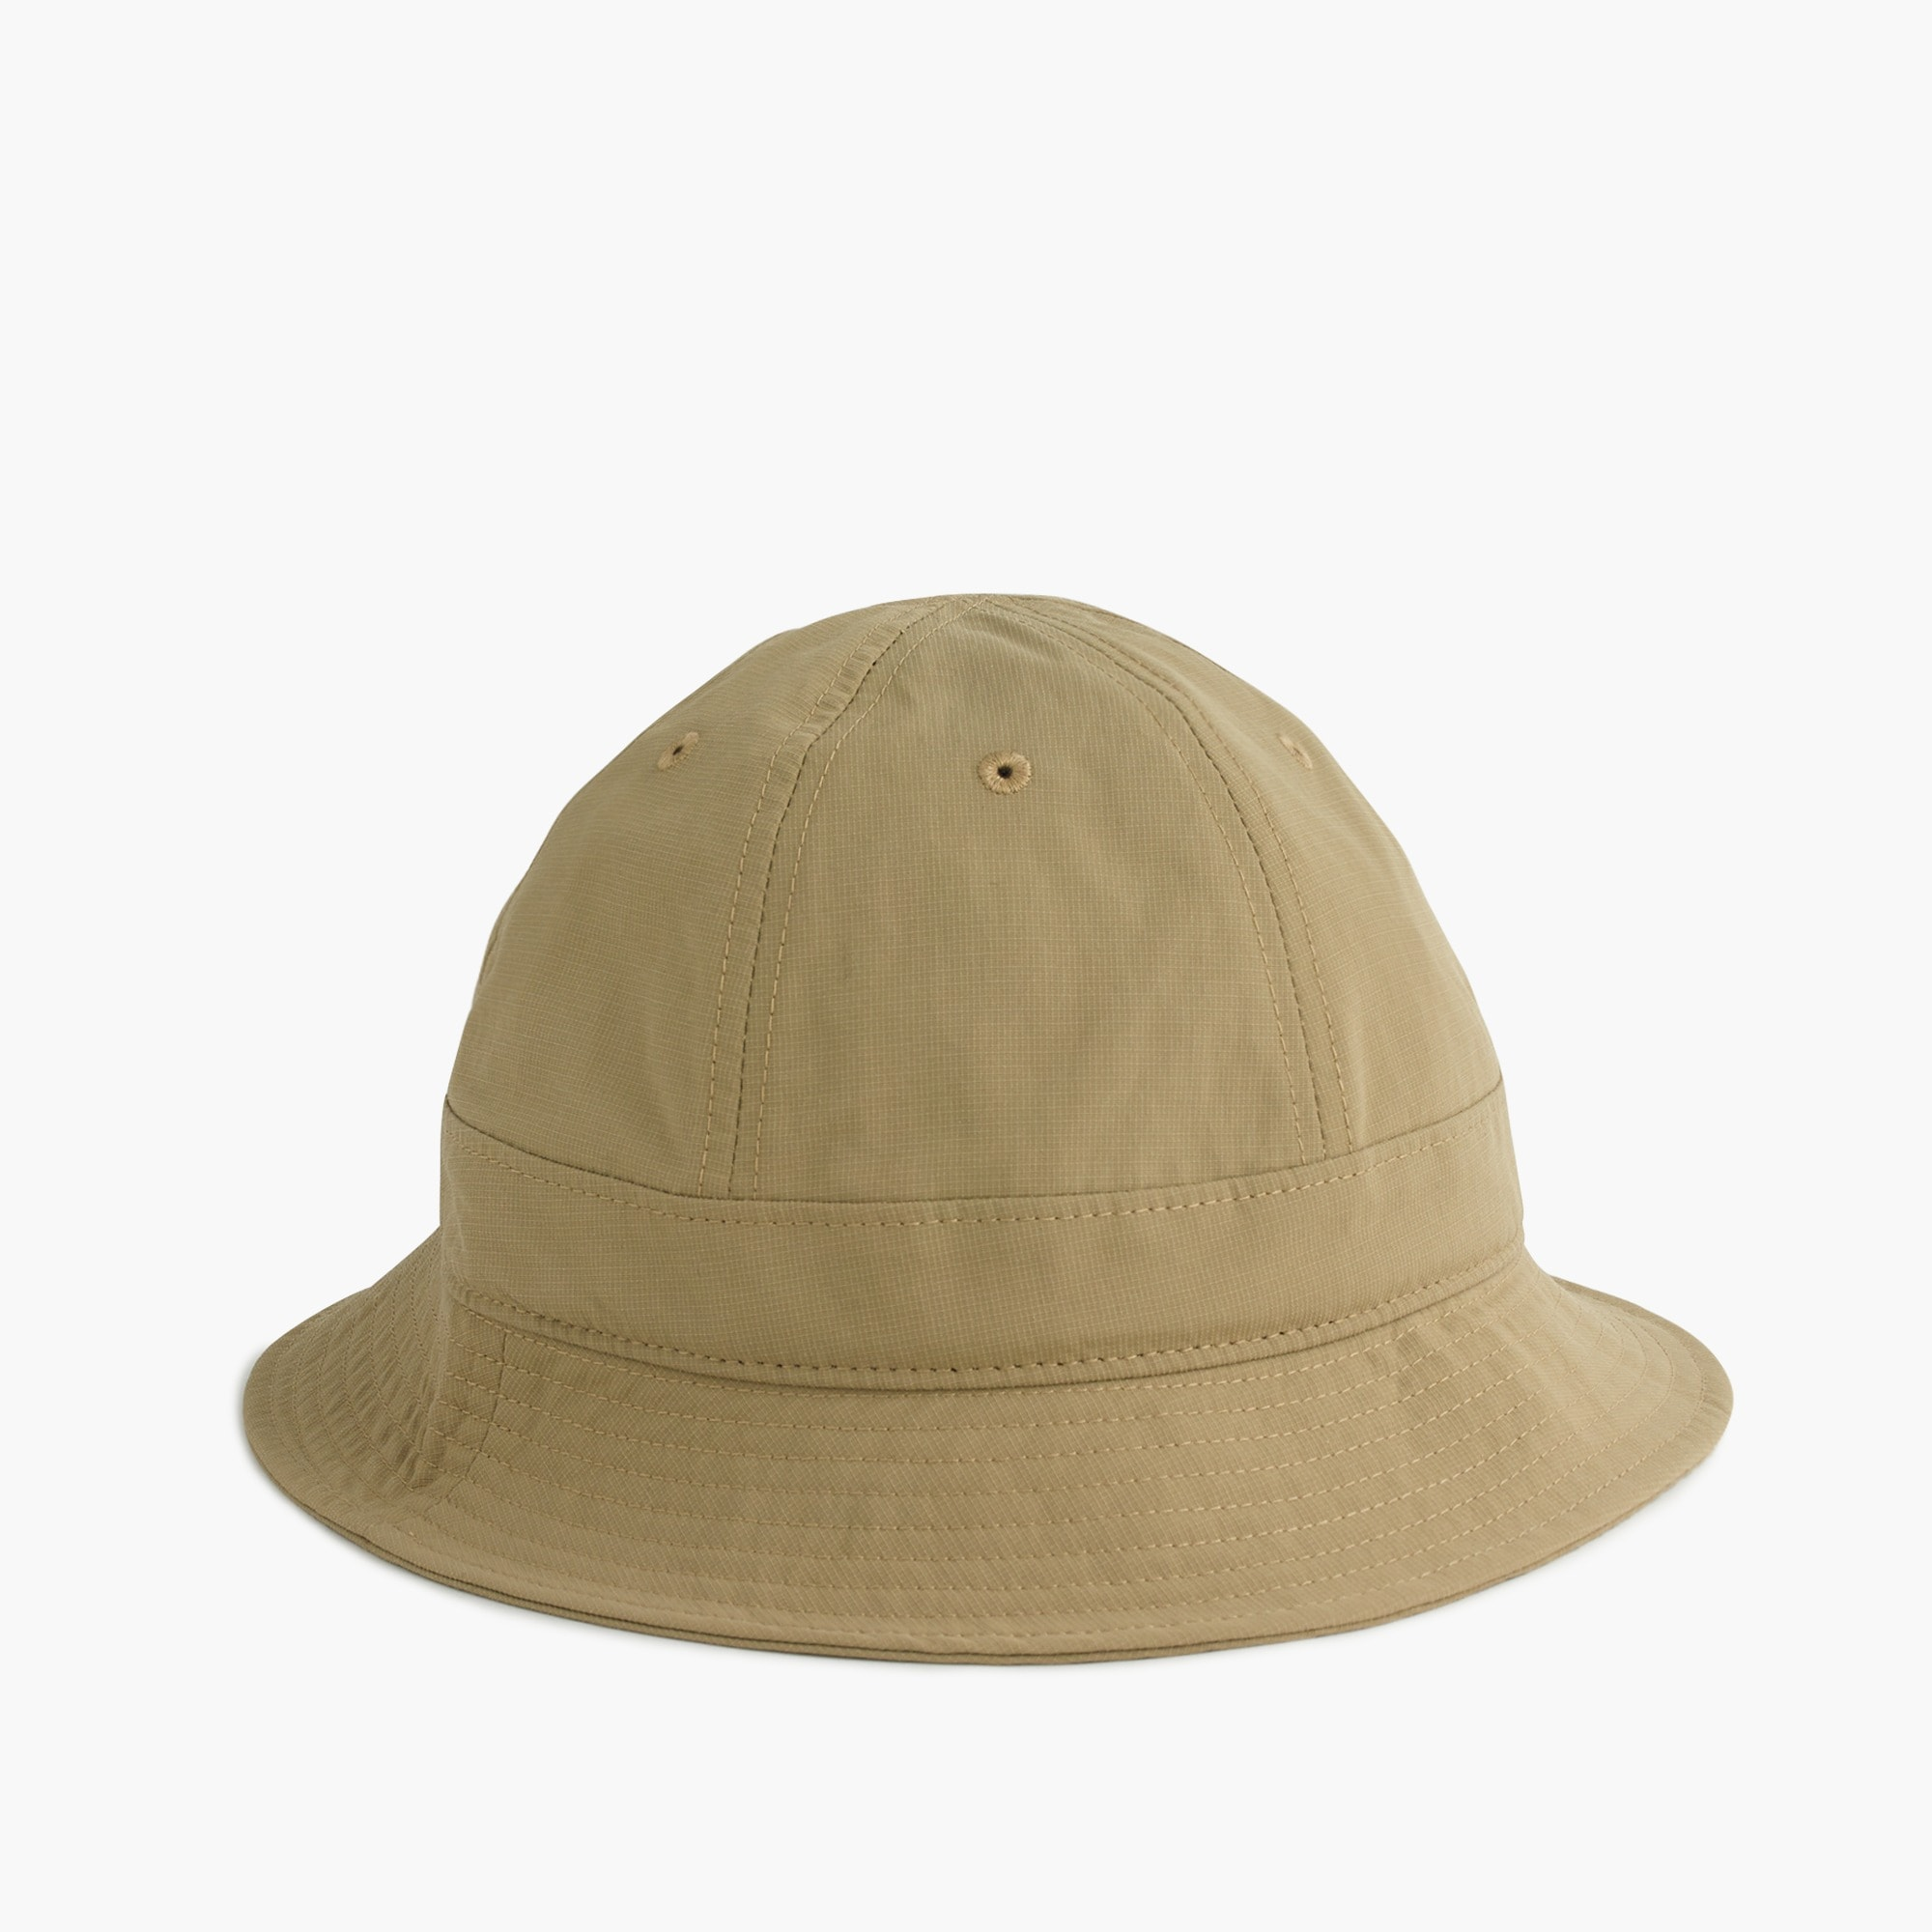 Sun-safe bucket hat